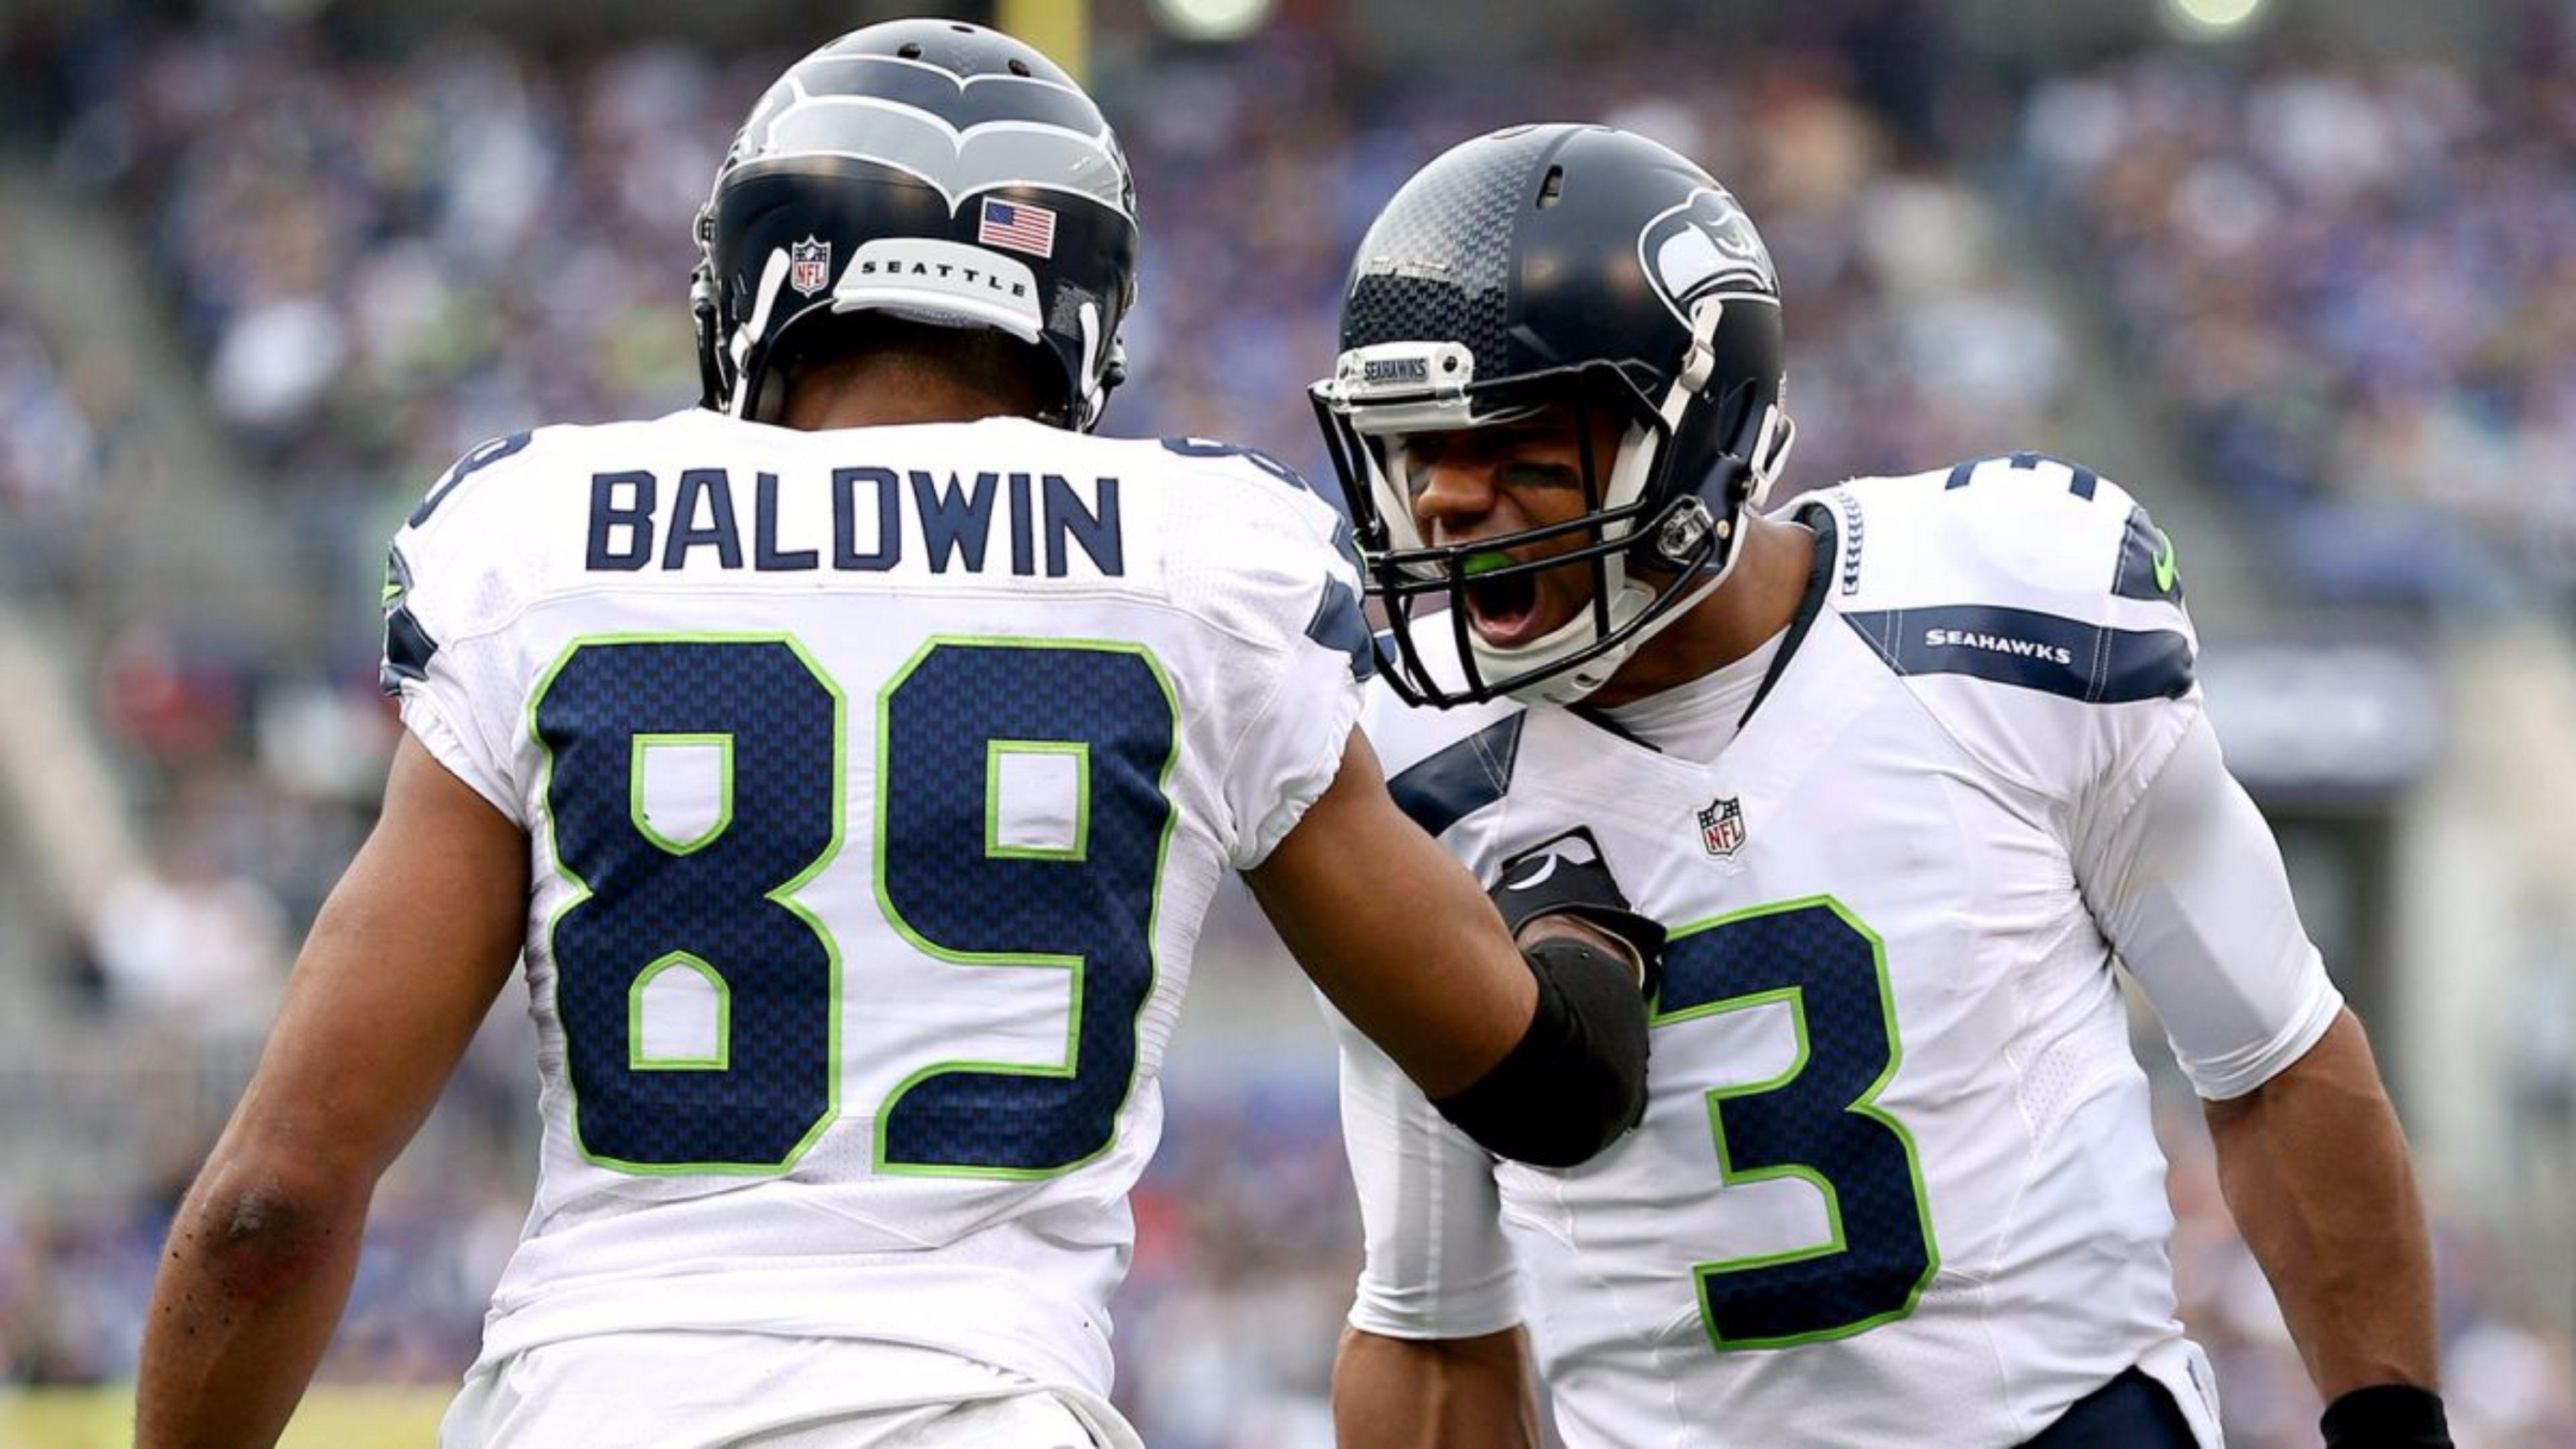 Baldwin and 2016 Russell Wilson 4K Wallpapers | Free 4K Wallpaper